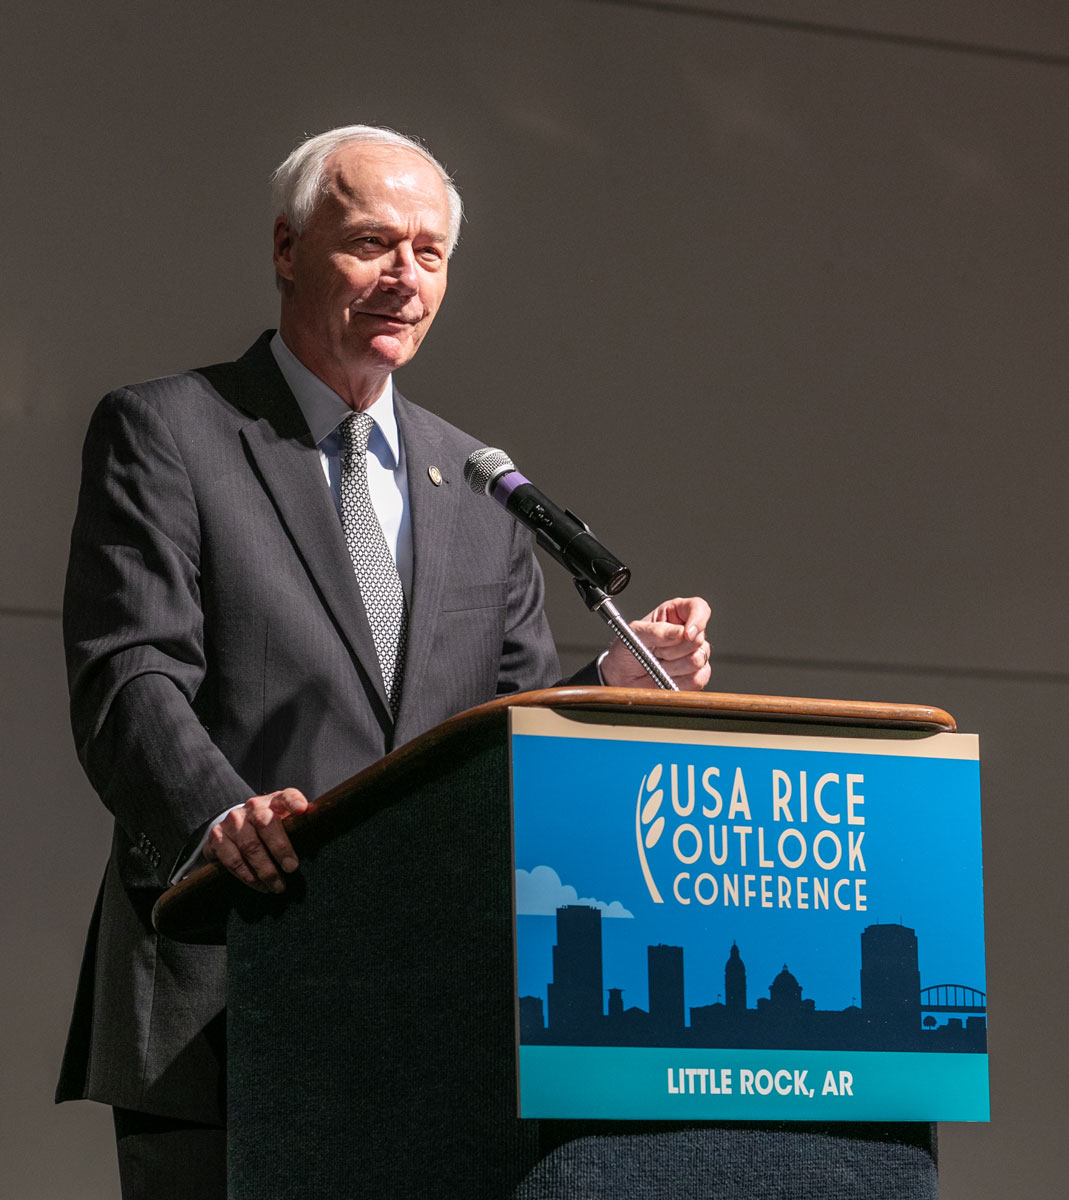 Older white man wearing business suit stands in front of podium with USA Rice Outlook Conference Little Rock AR sign